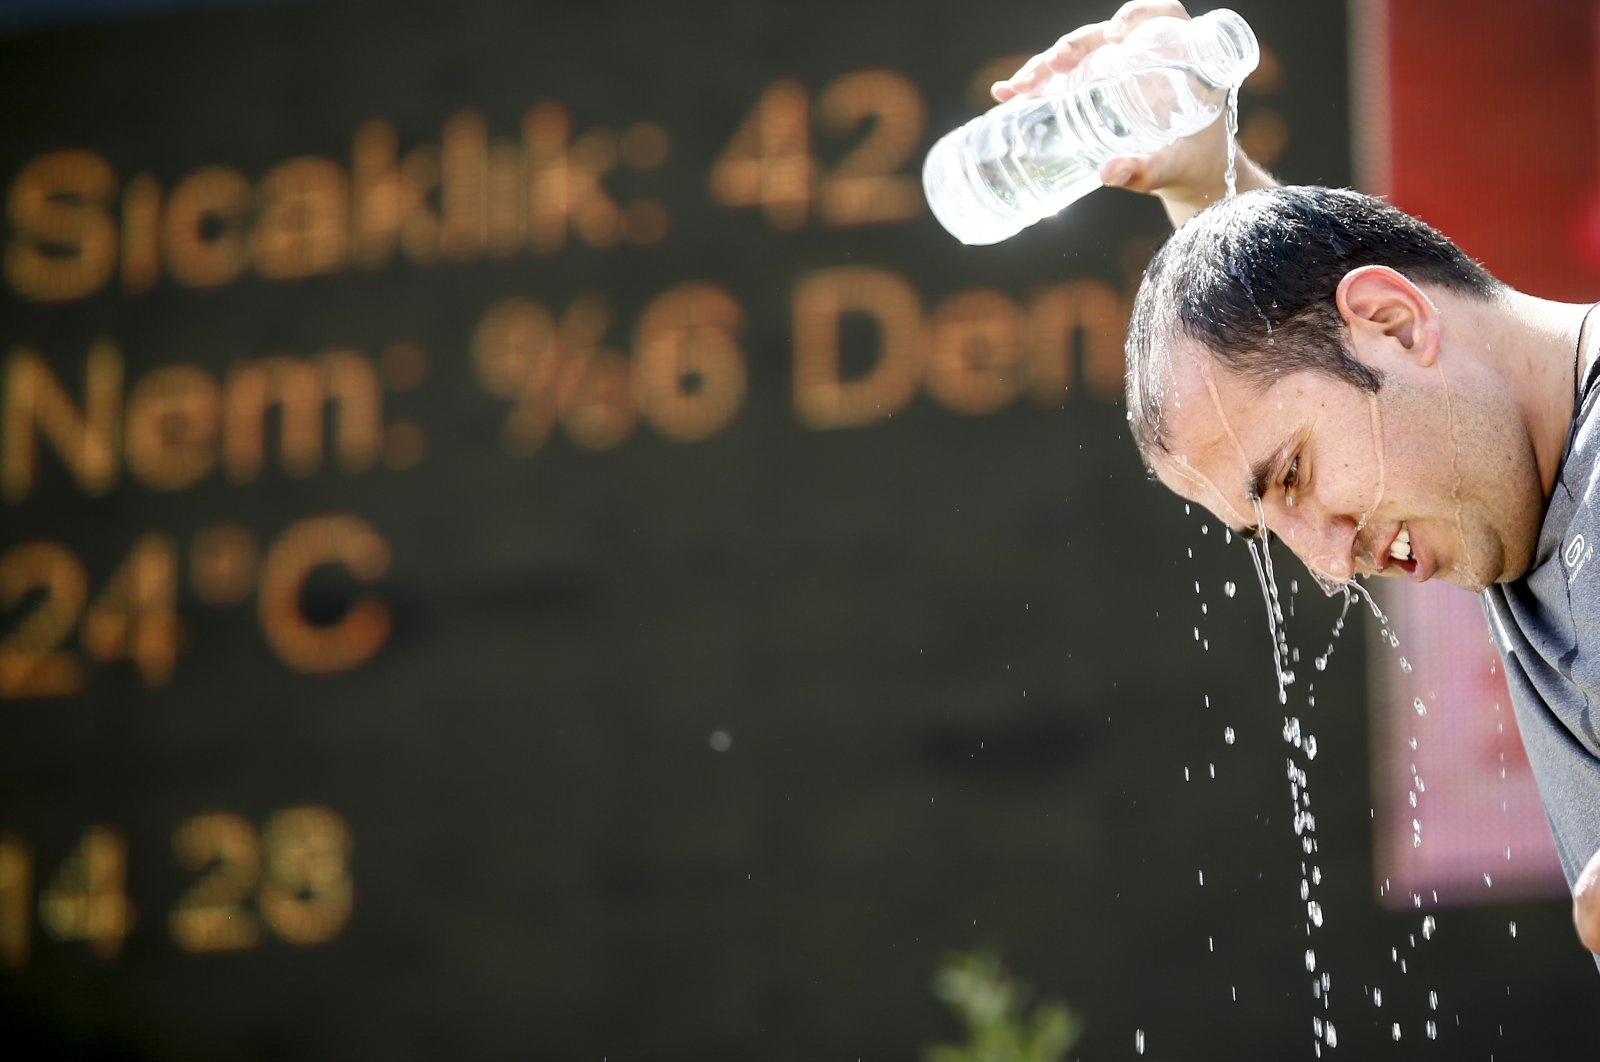 A man pours water on his head in front of a temperature sign reading 42 Celsius degrees, in Antalya, southern Turkey, May 20, 2020. (AA PHOTO)